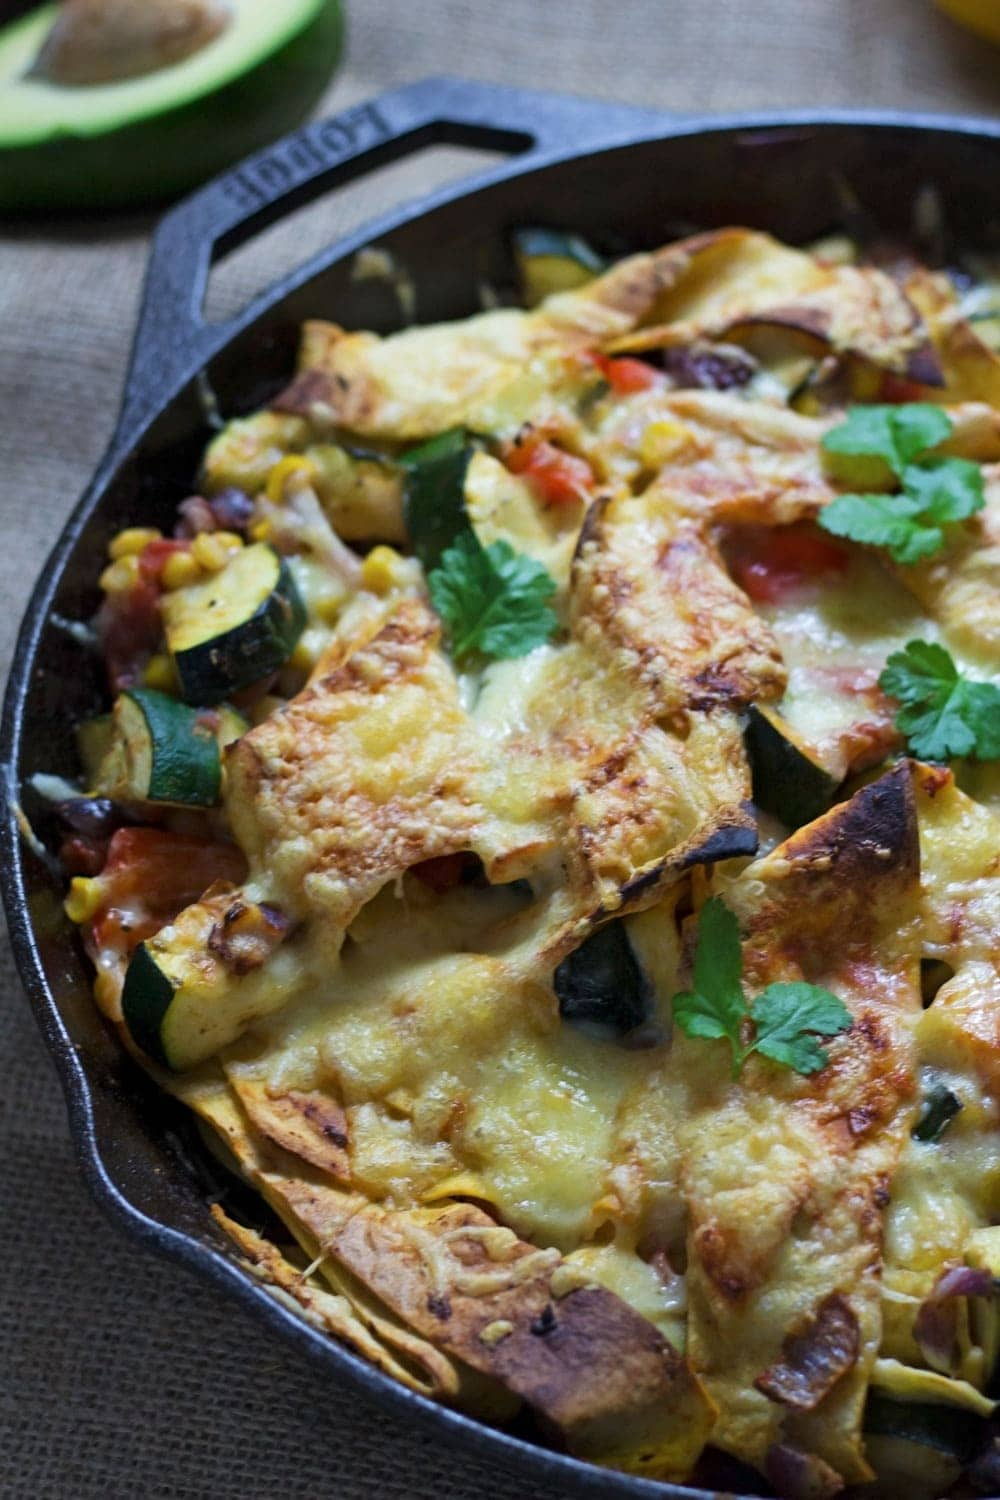 This veggie enchilada skillet is super healthy and full of spicy Mexican flavours! Perfect for a weeknight vegetarian dinner and great for leftovers too.